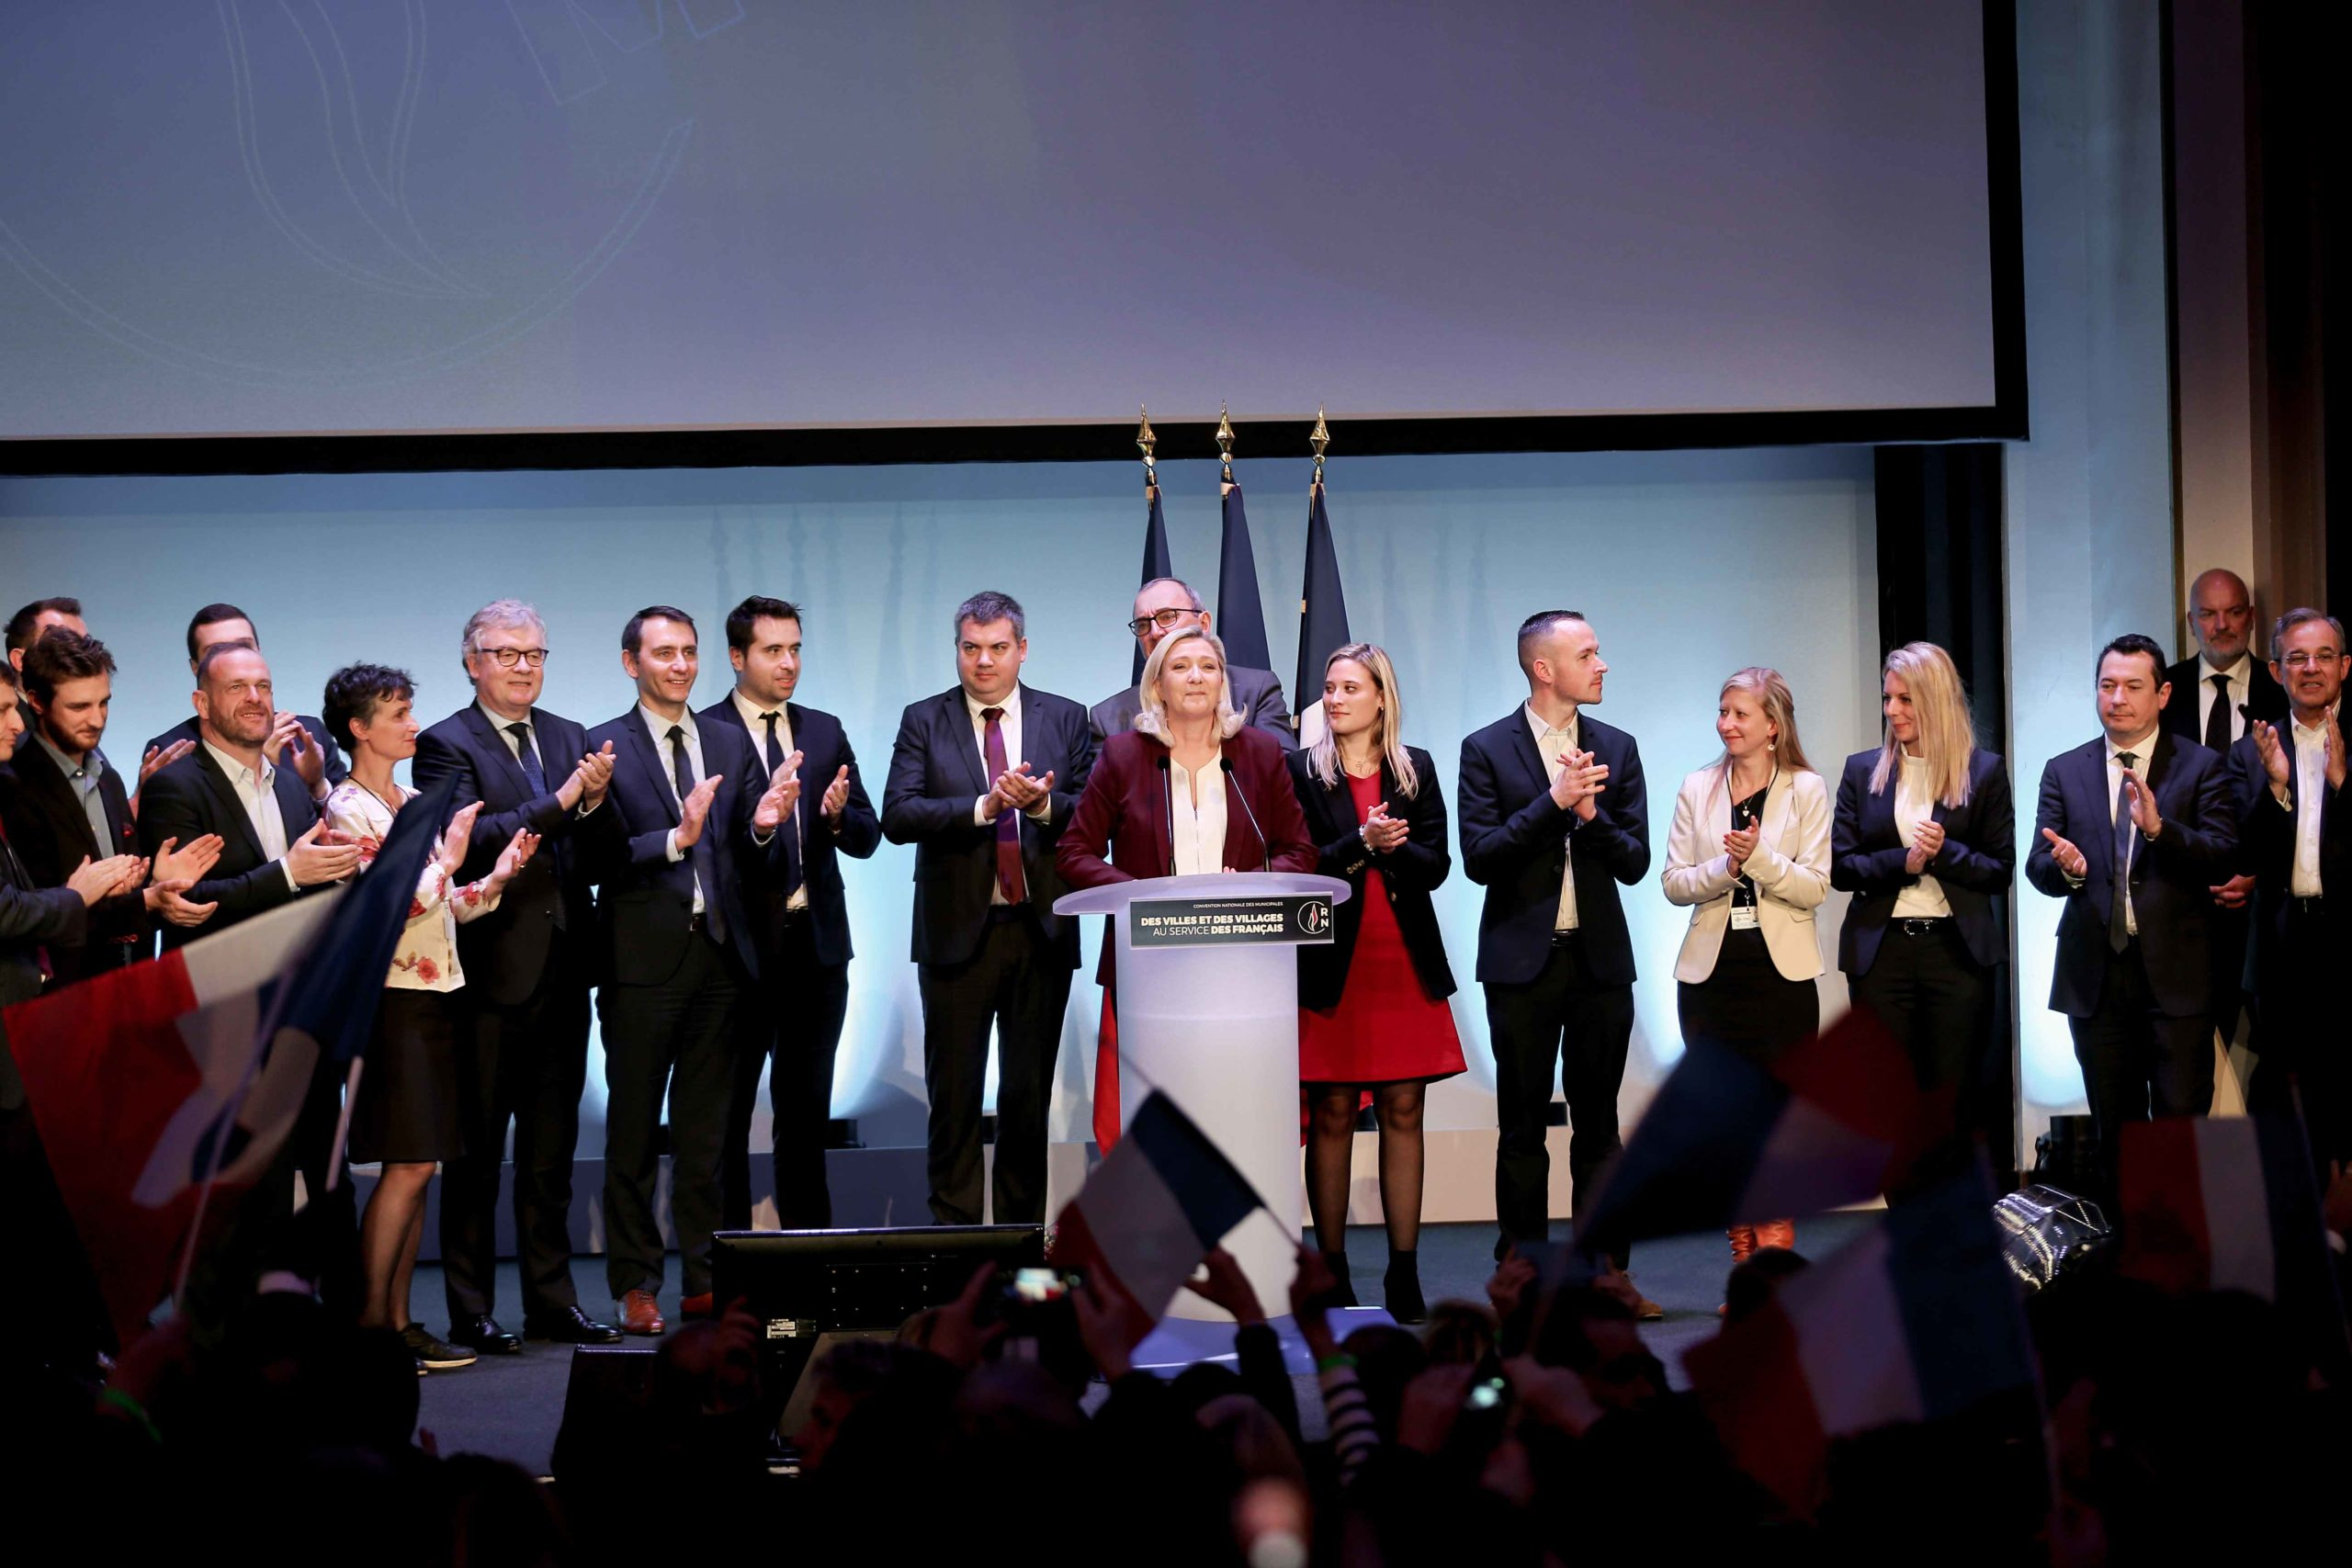 French far-right party Rassemblement National (RN) president and MP Marine Le Pen (C) speaks in Paris, on January 12, 2020, during a meeting to launch the RN campaign candidates for the next municipal elections.  The 2020 French municipal elections will be